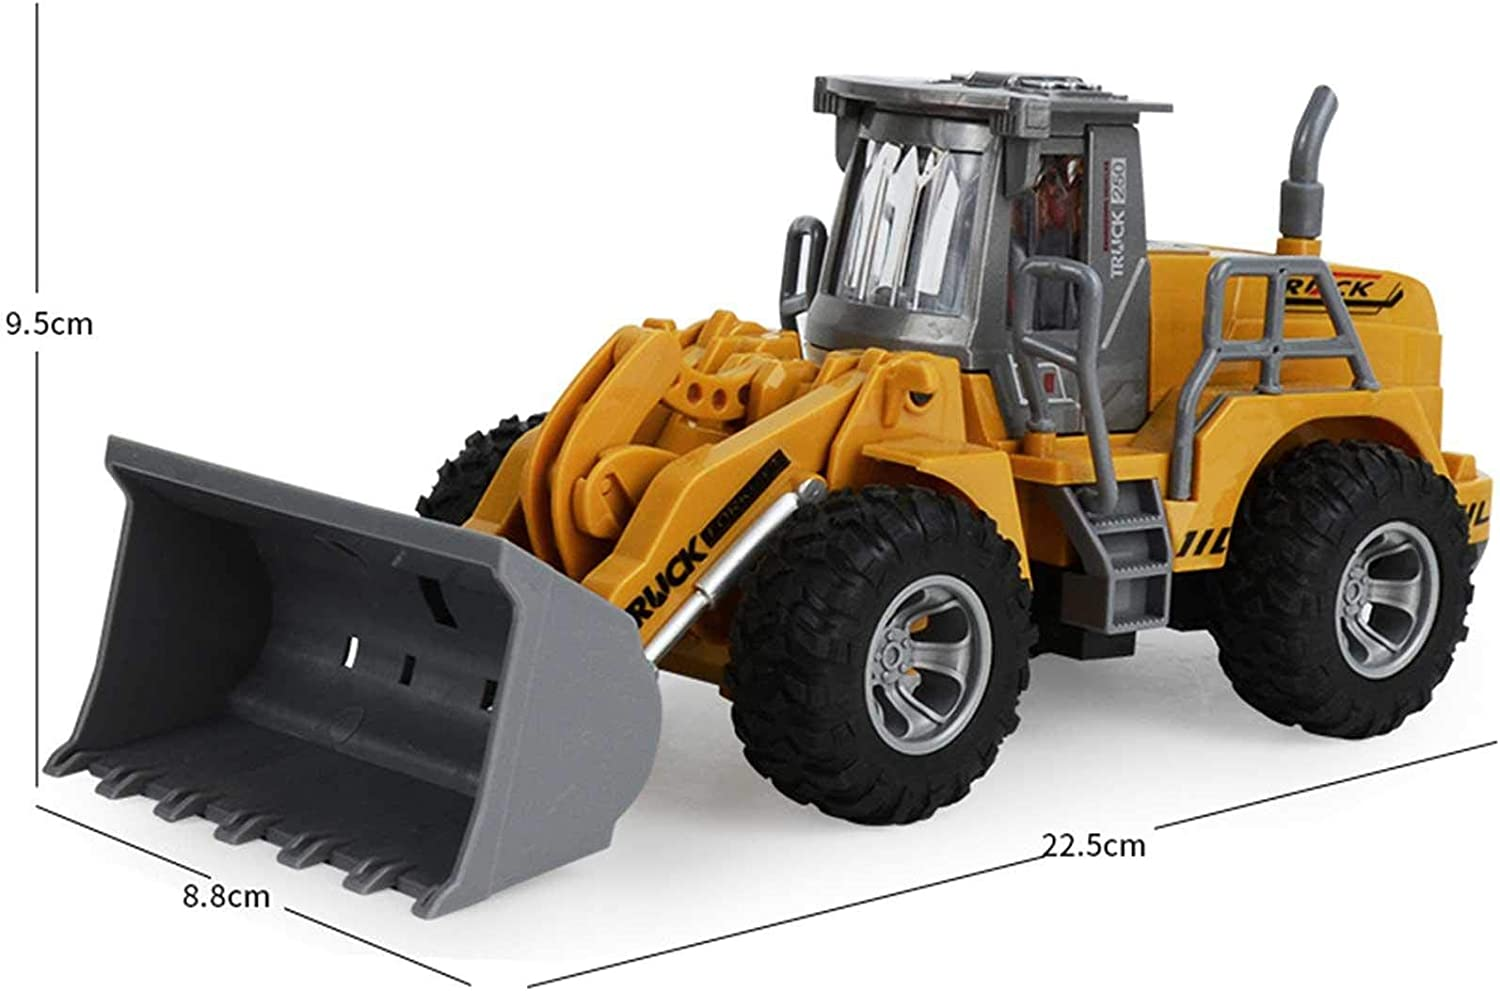 chlius Remote Control Bulldozer Toy Without Battery - With Realistic Performances 5-channel RC Engineering Vehicle With Colorful Lighting RC Front Loader Toy For Kids Boys Ages 3+